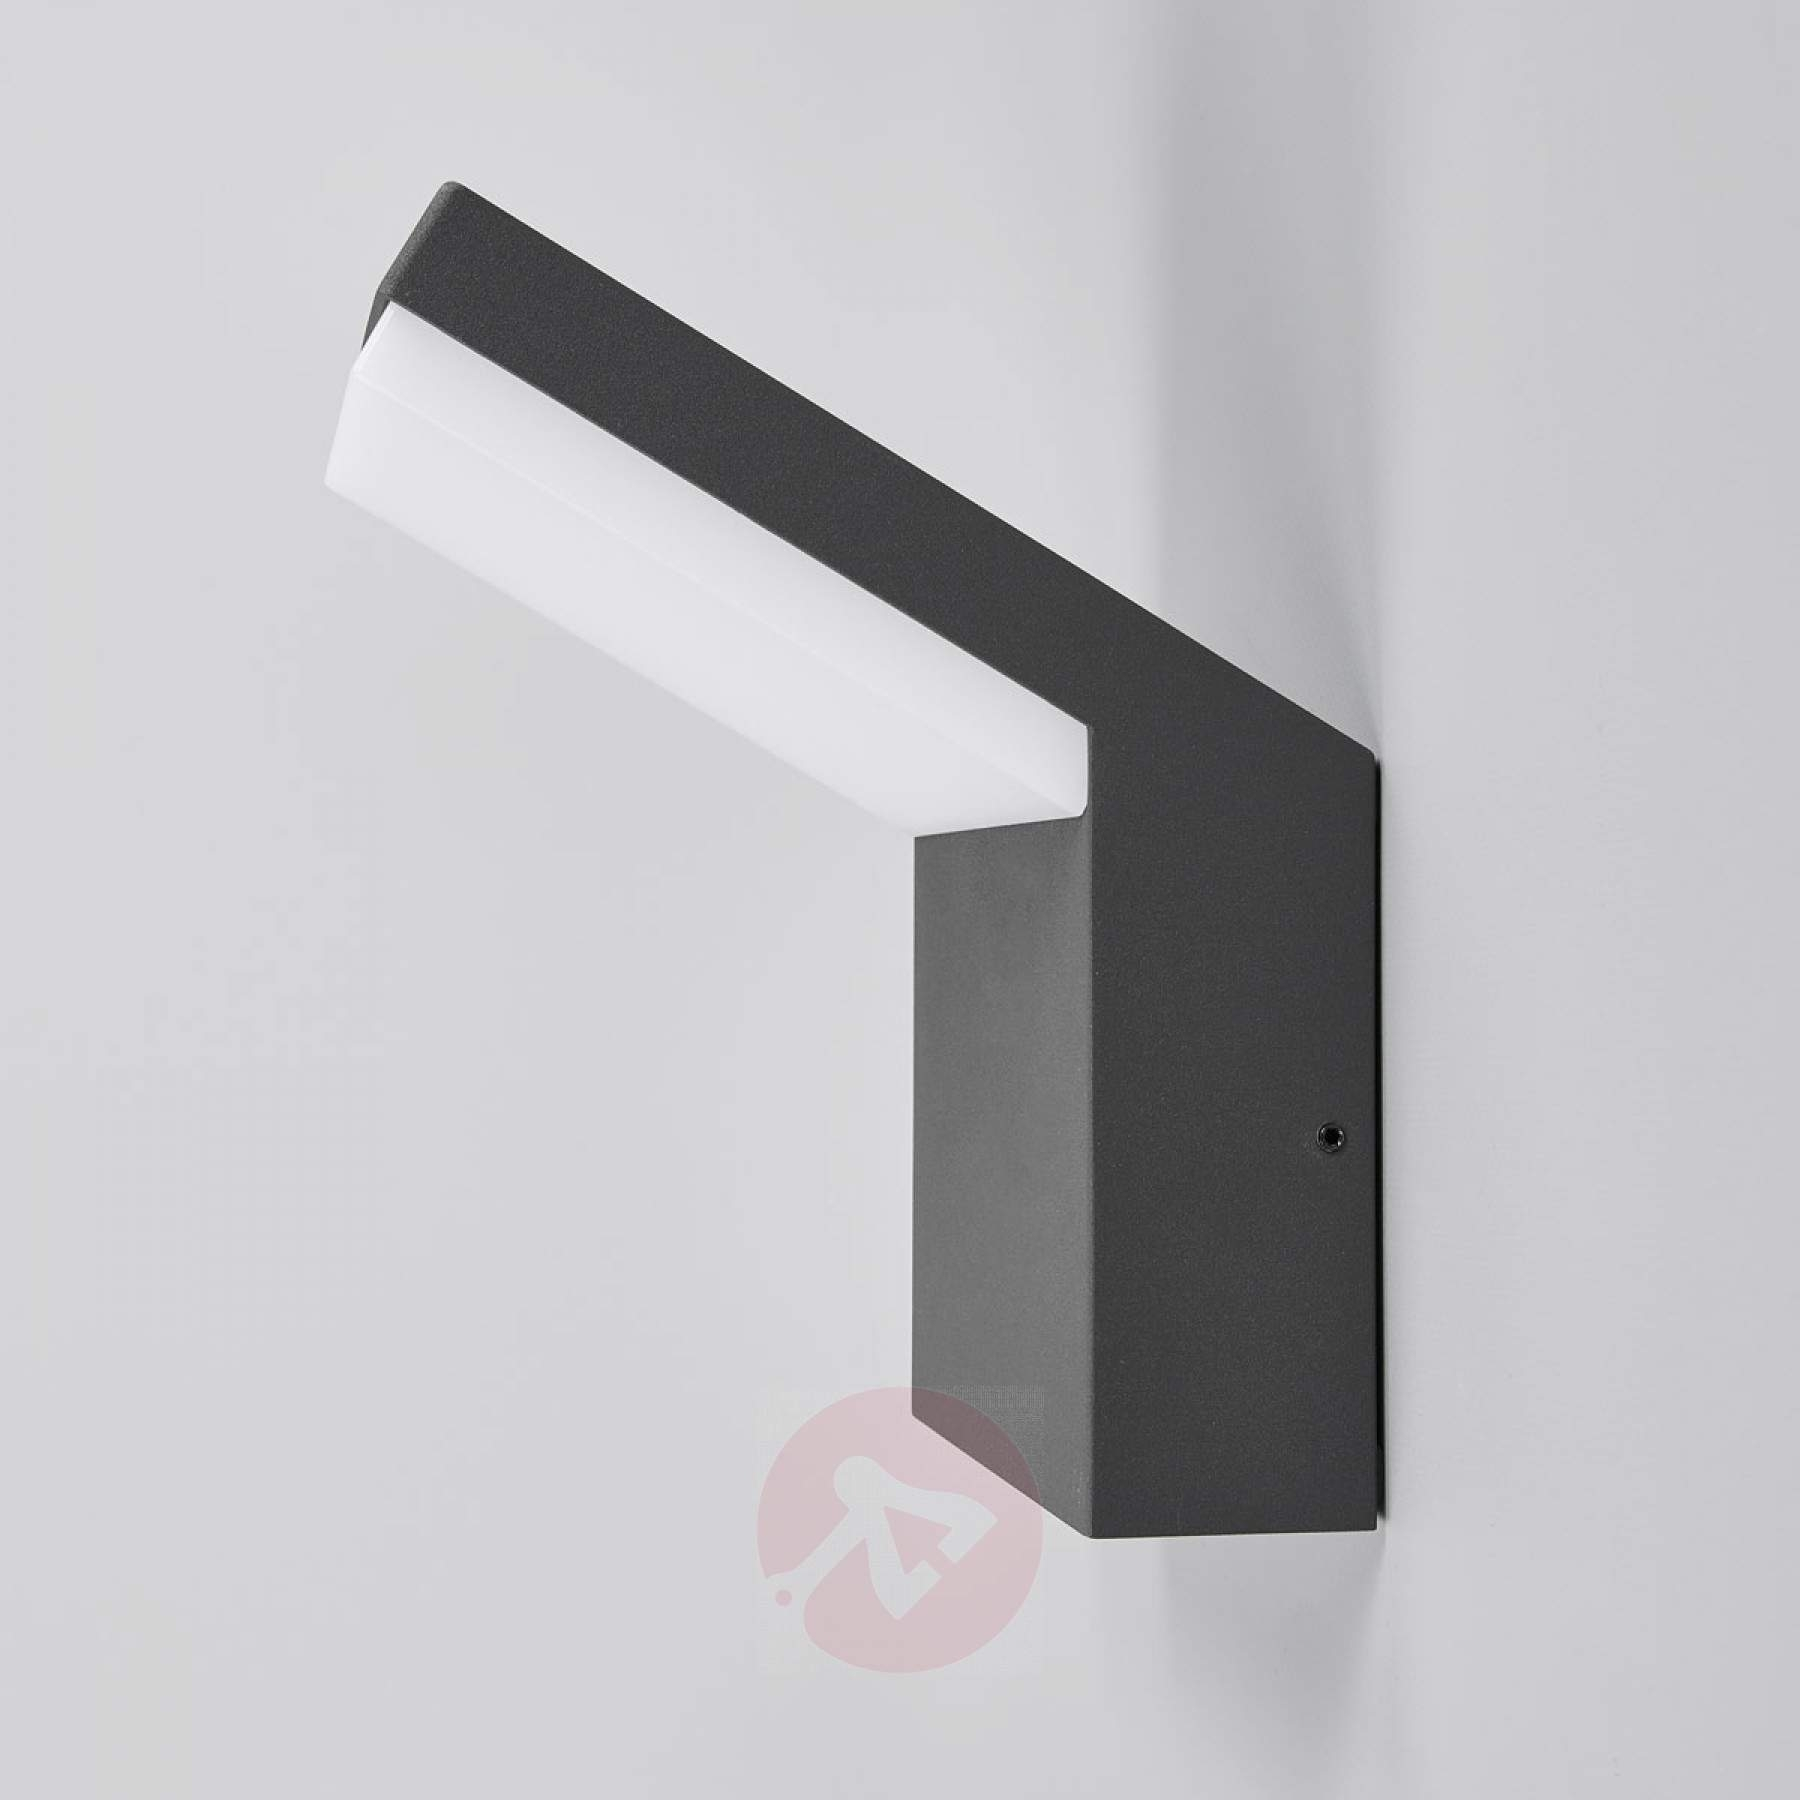 Inspiration about Downlighting Led Outdoor Wall Lamp Yolena | Lights.ie In Outdoor Wall Down Lighting (#10 of 15)